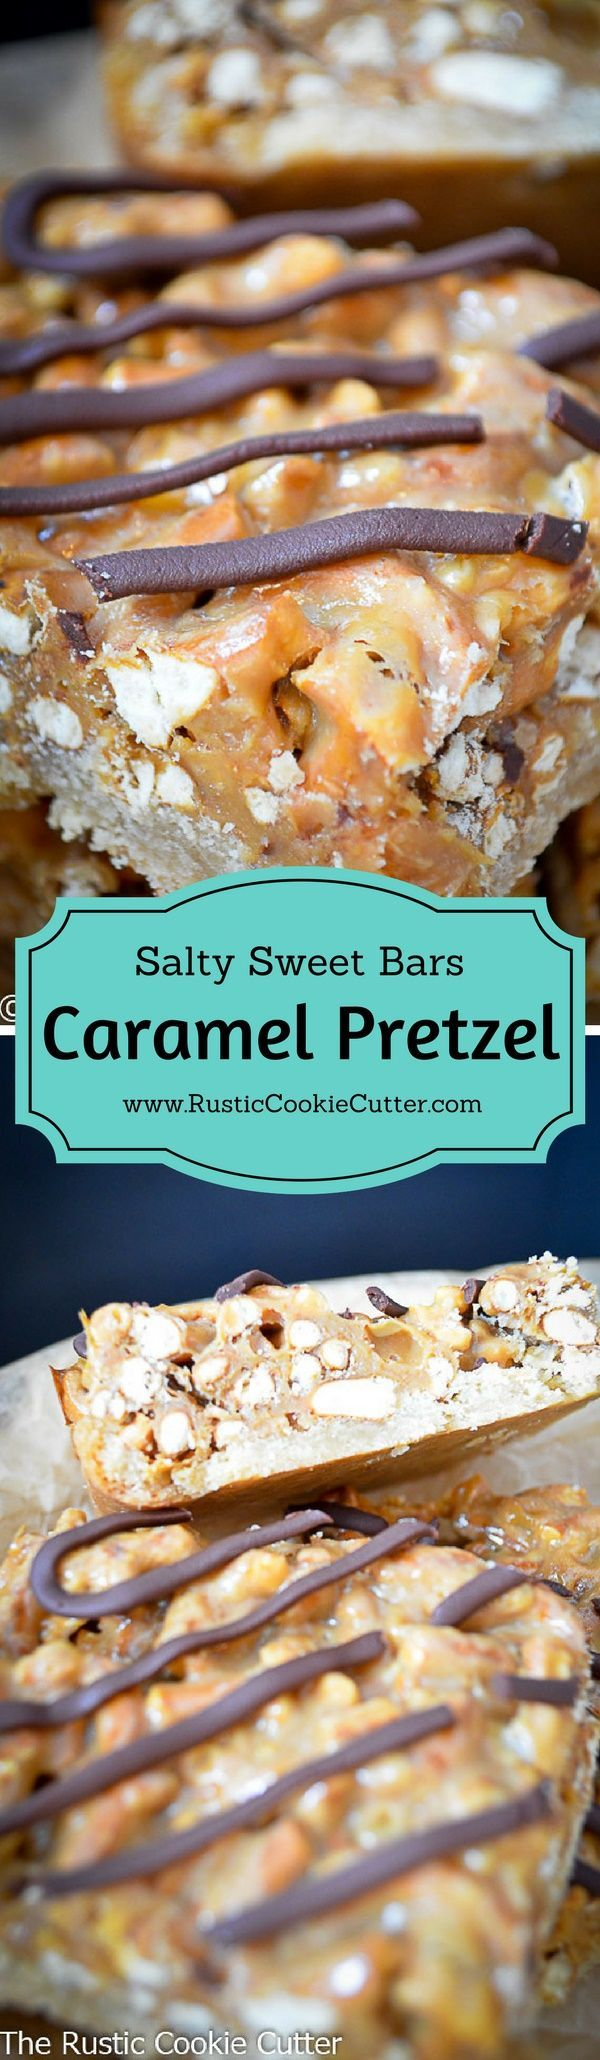 Chewy, Crunchy, Salty, Sweet Caramel Pretzel Bars The perfect combination in one bite!